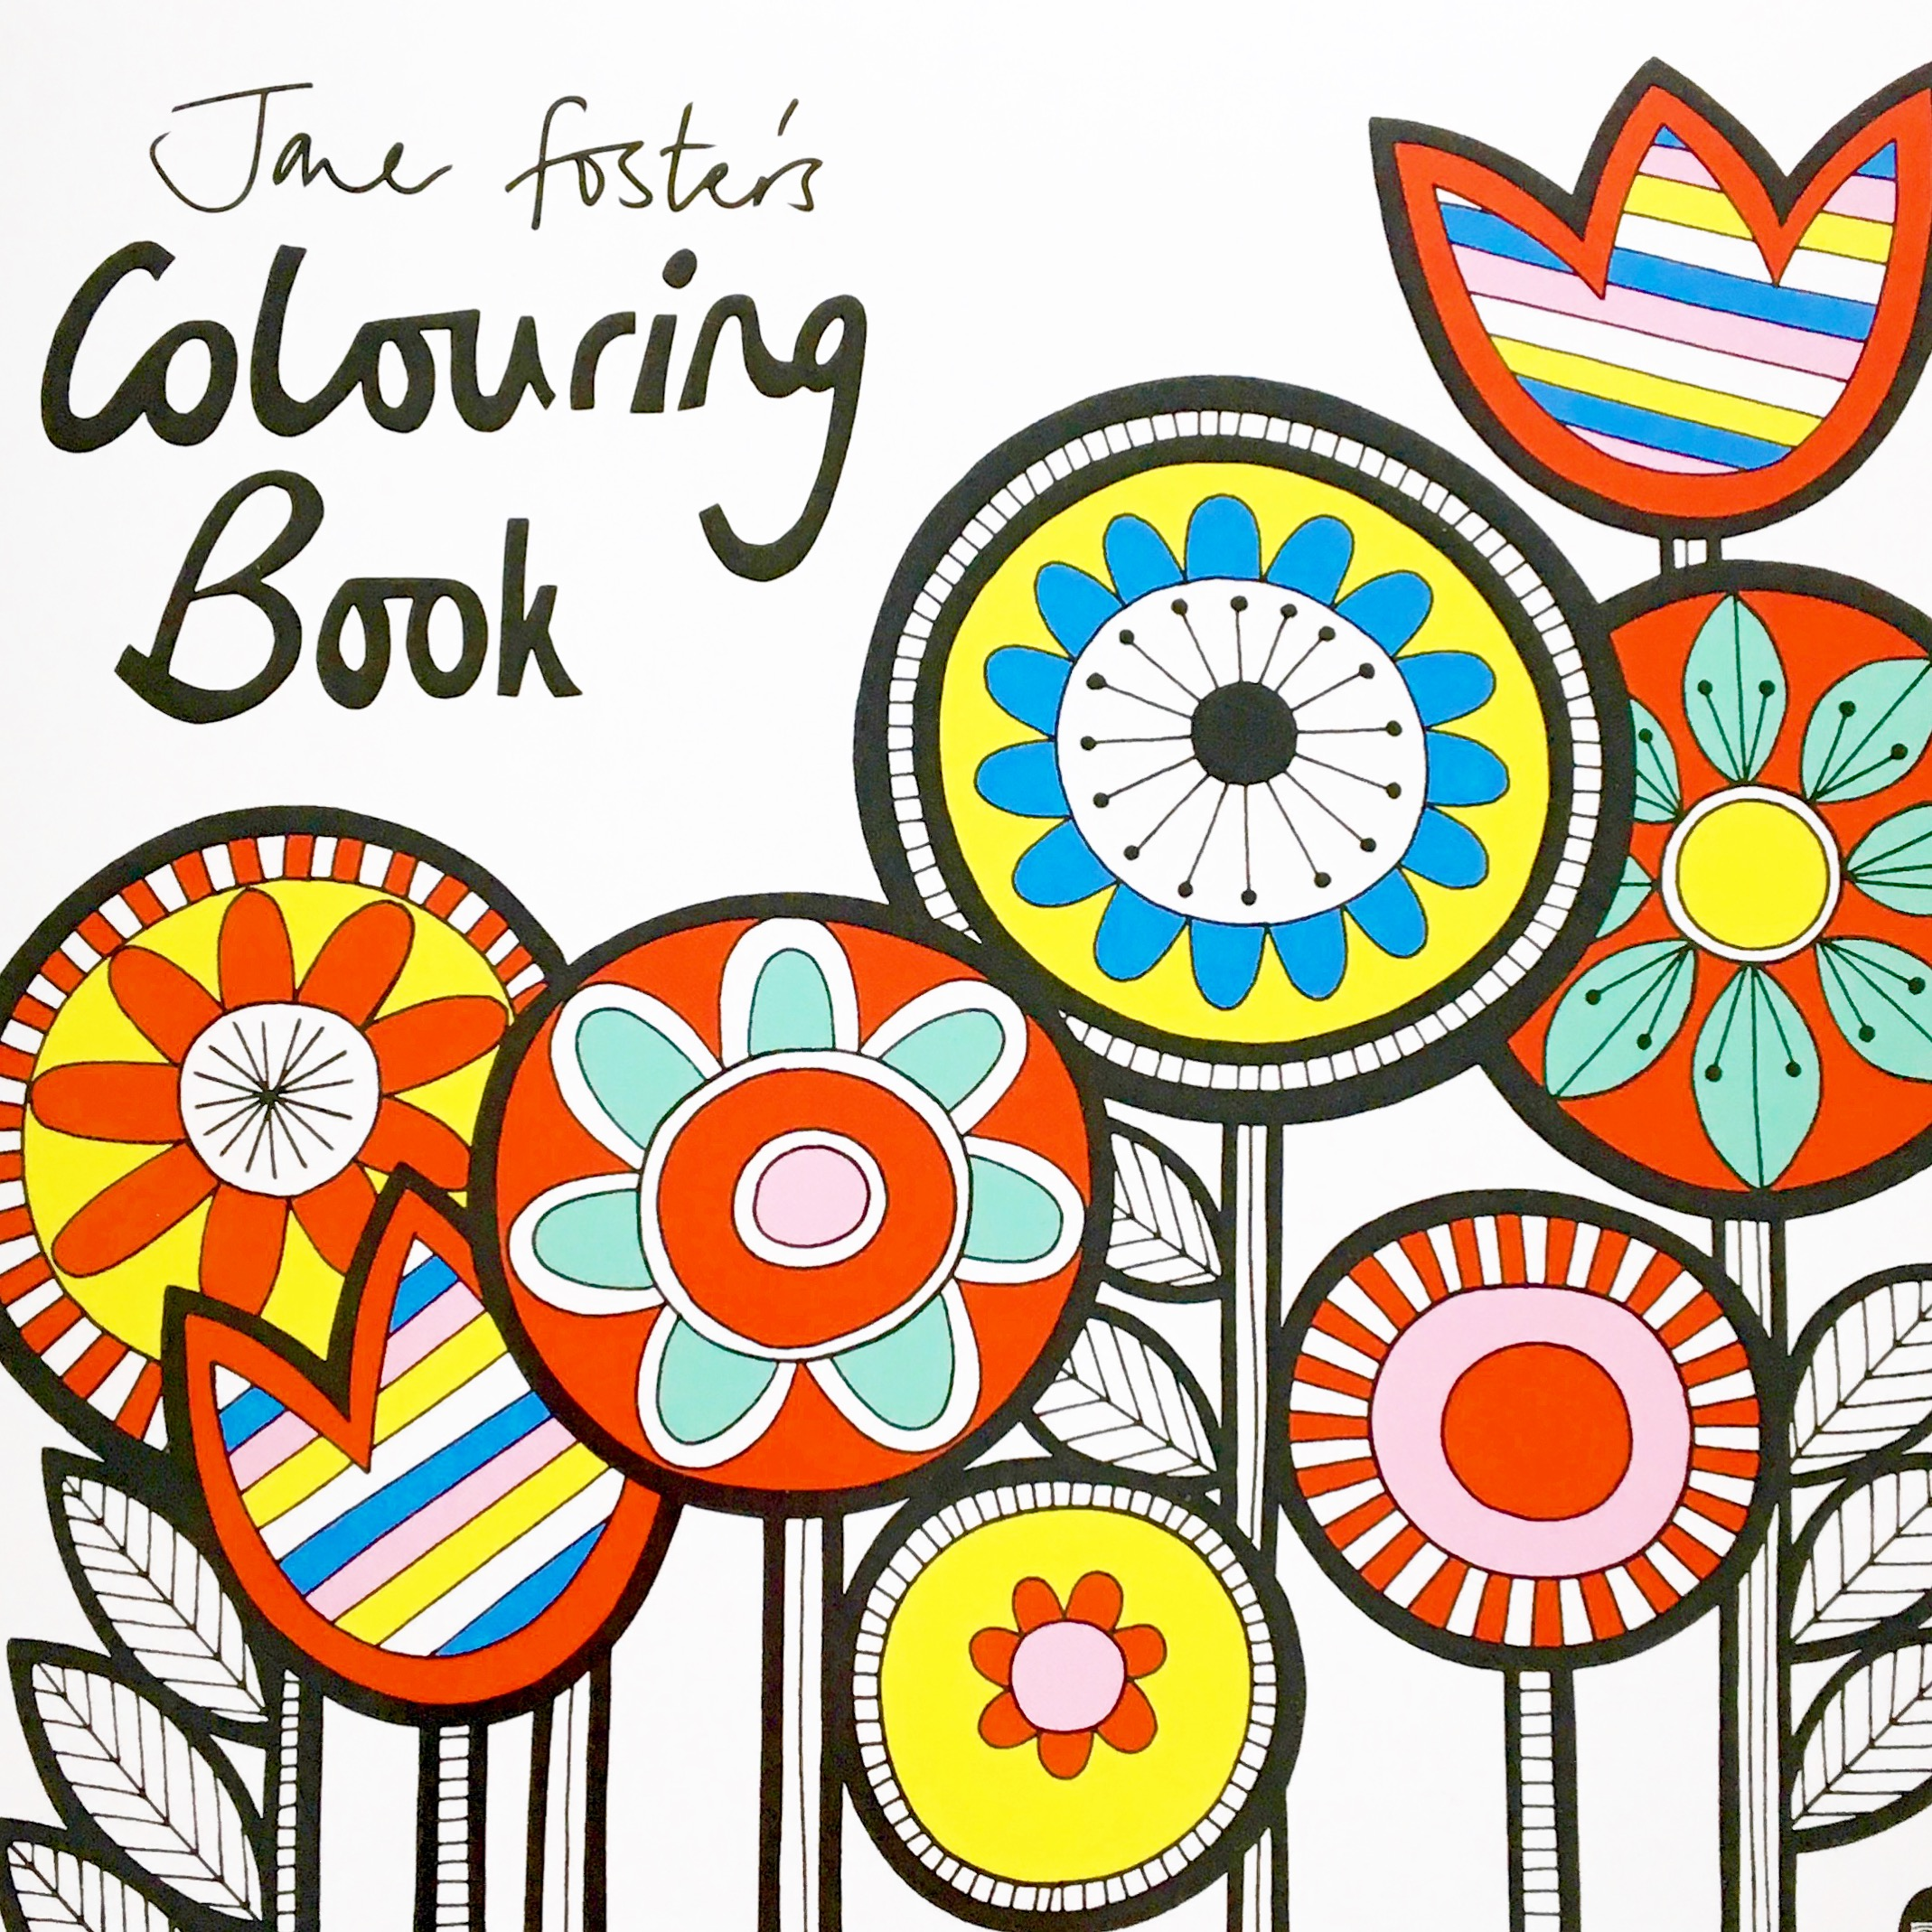 The cover of my new colouring book.